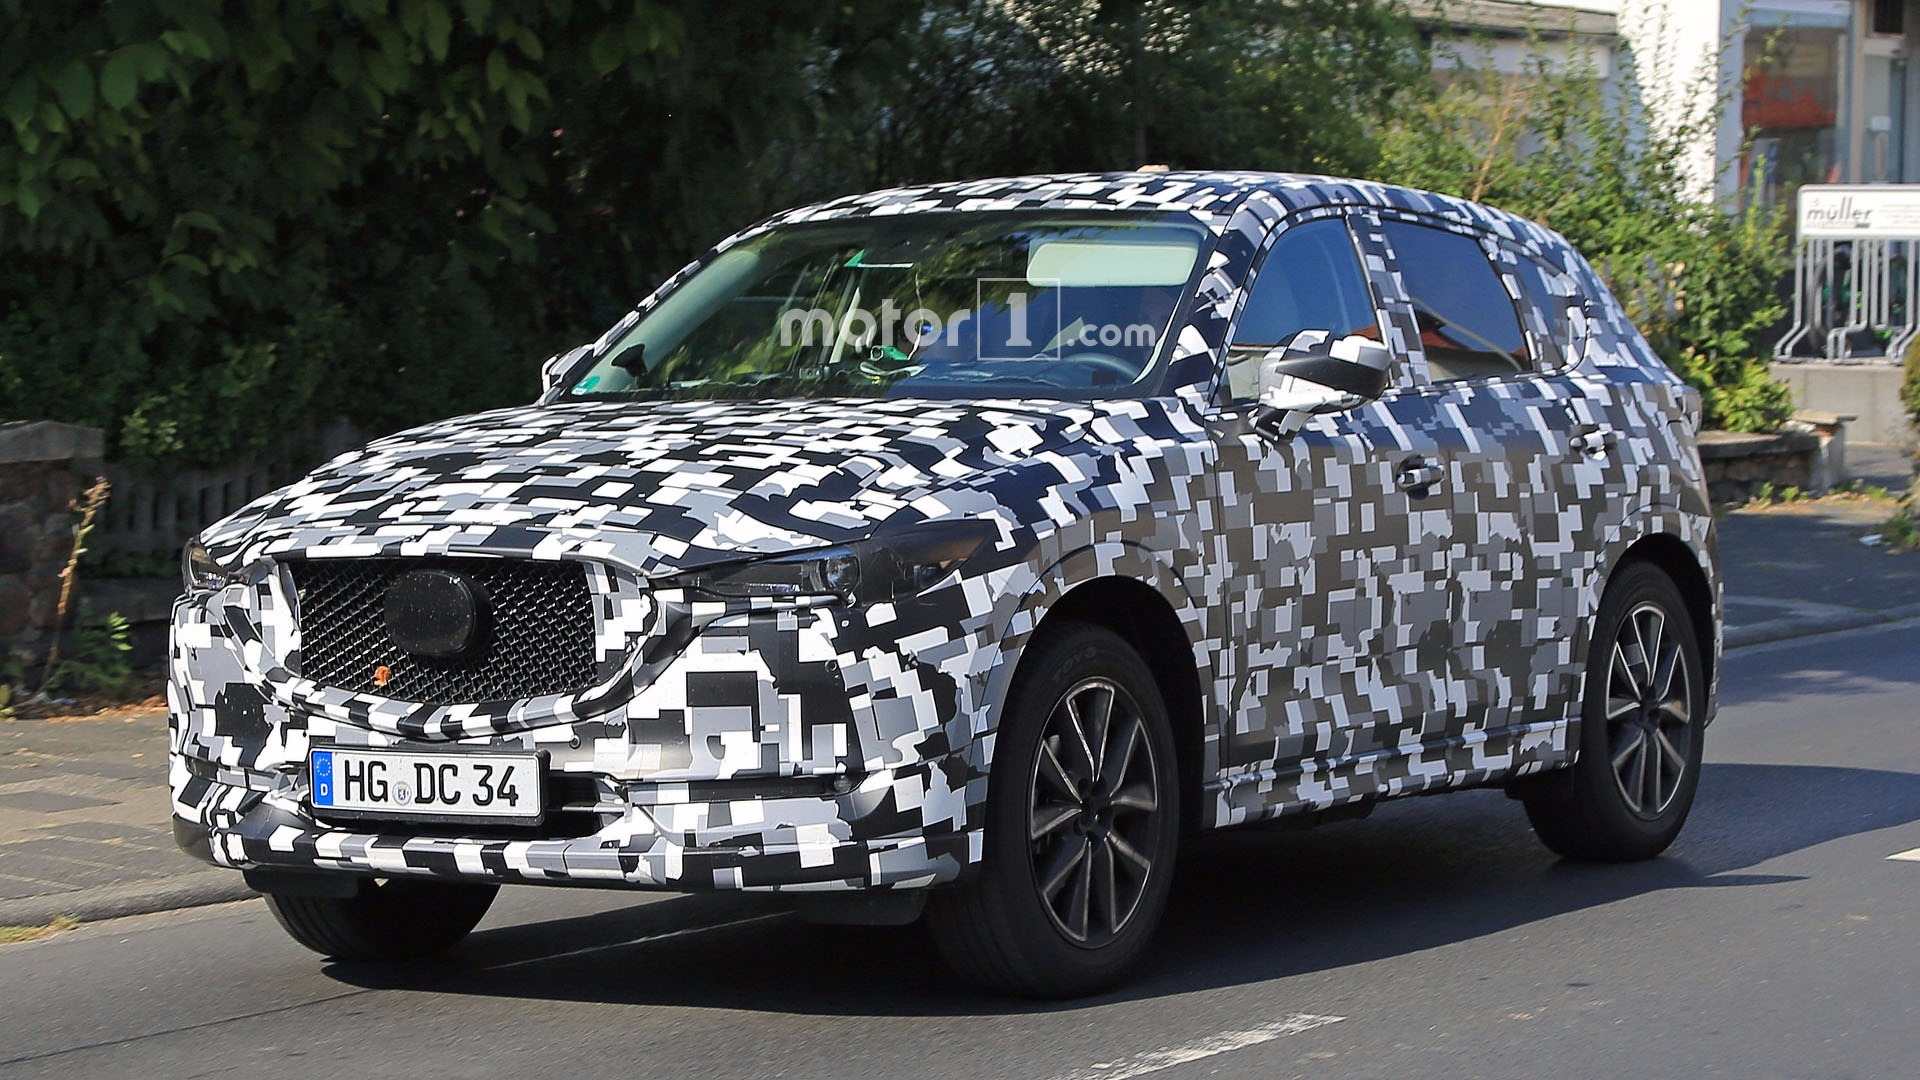 2018 Mazda CX-5: Redesign, Styling, Changes, Price >> Refreshed 2018 Mazda Cx 5 Spied In Europe